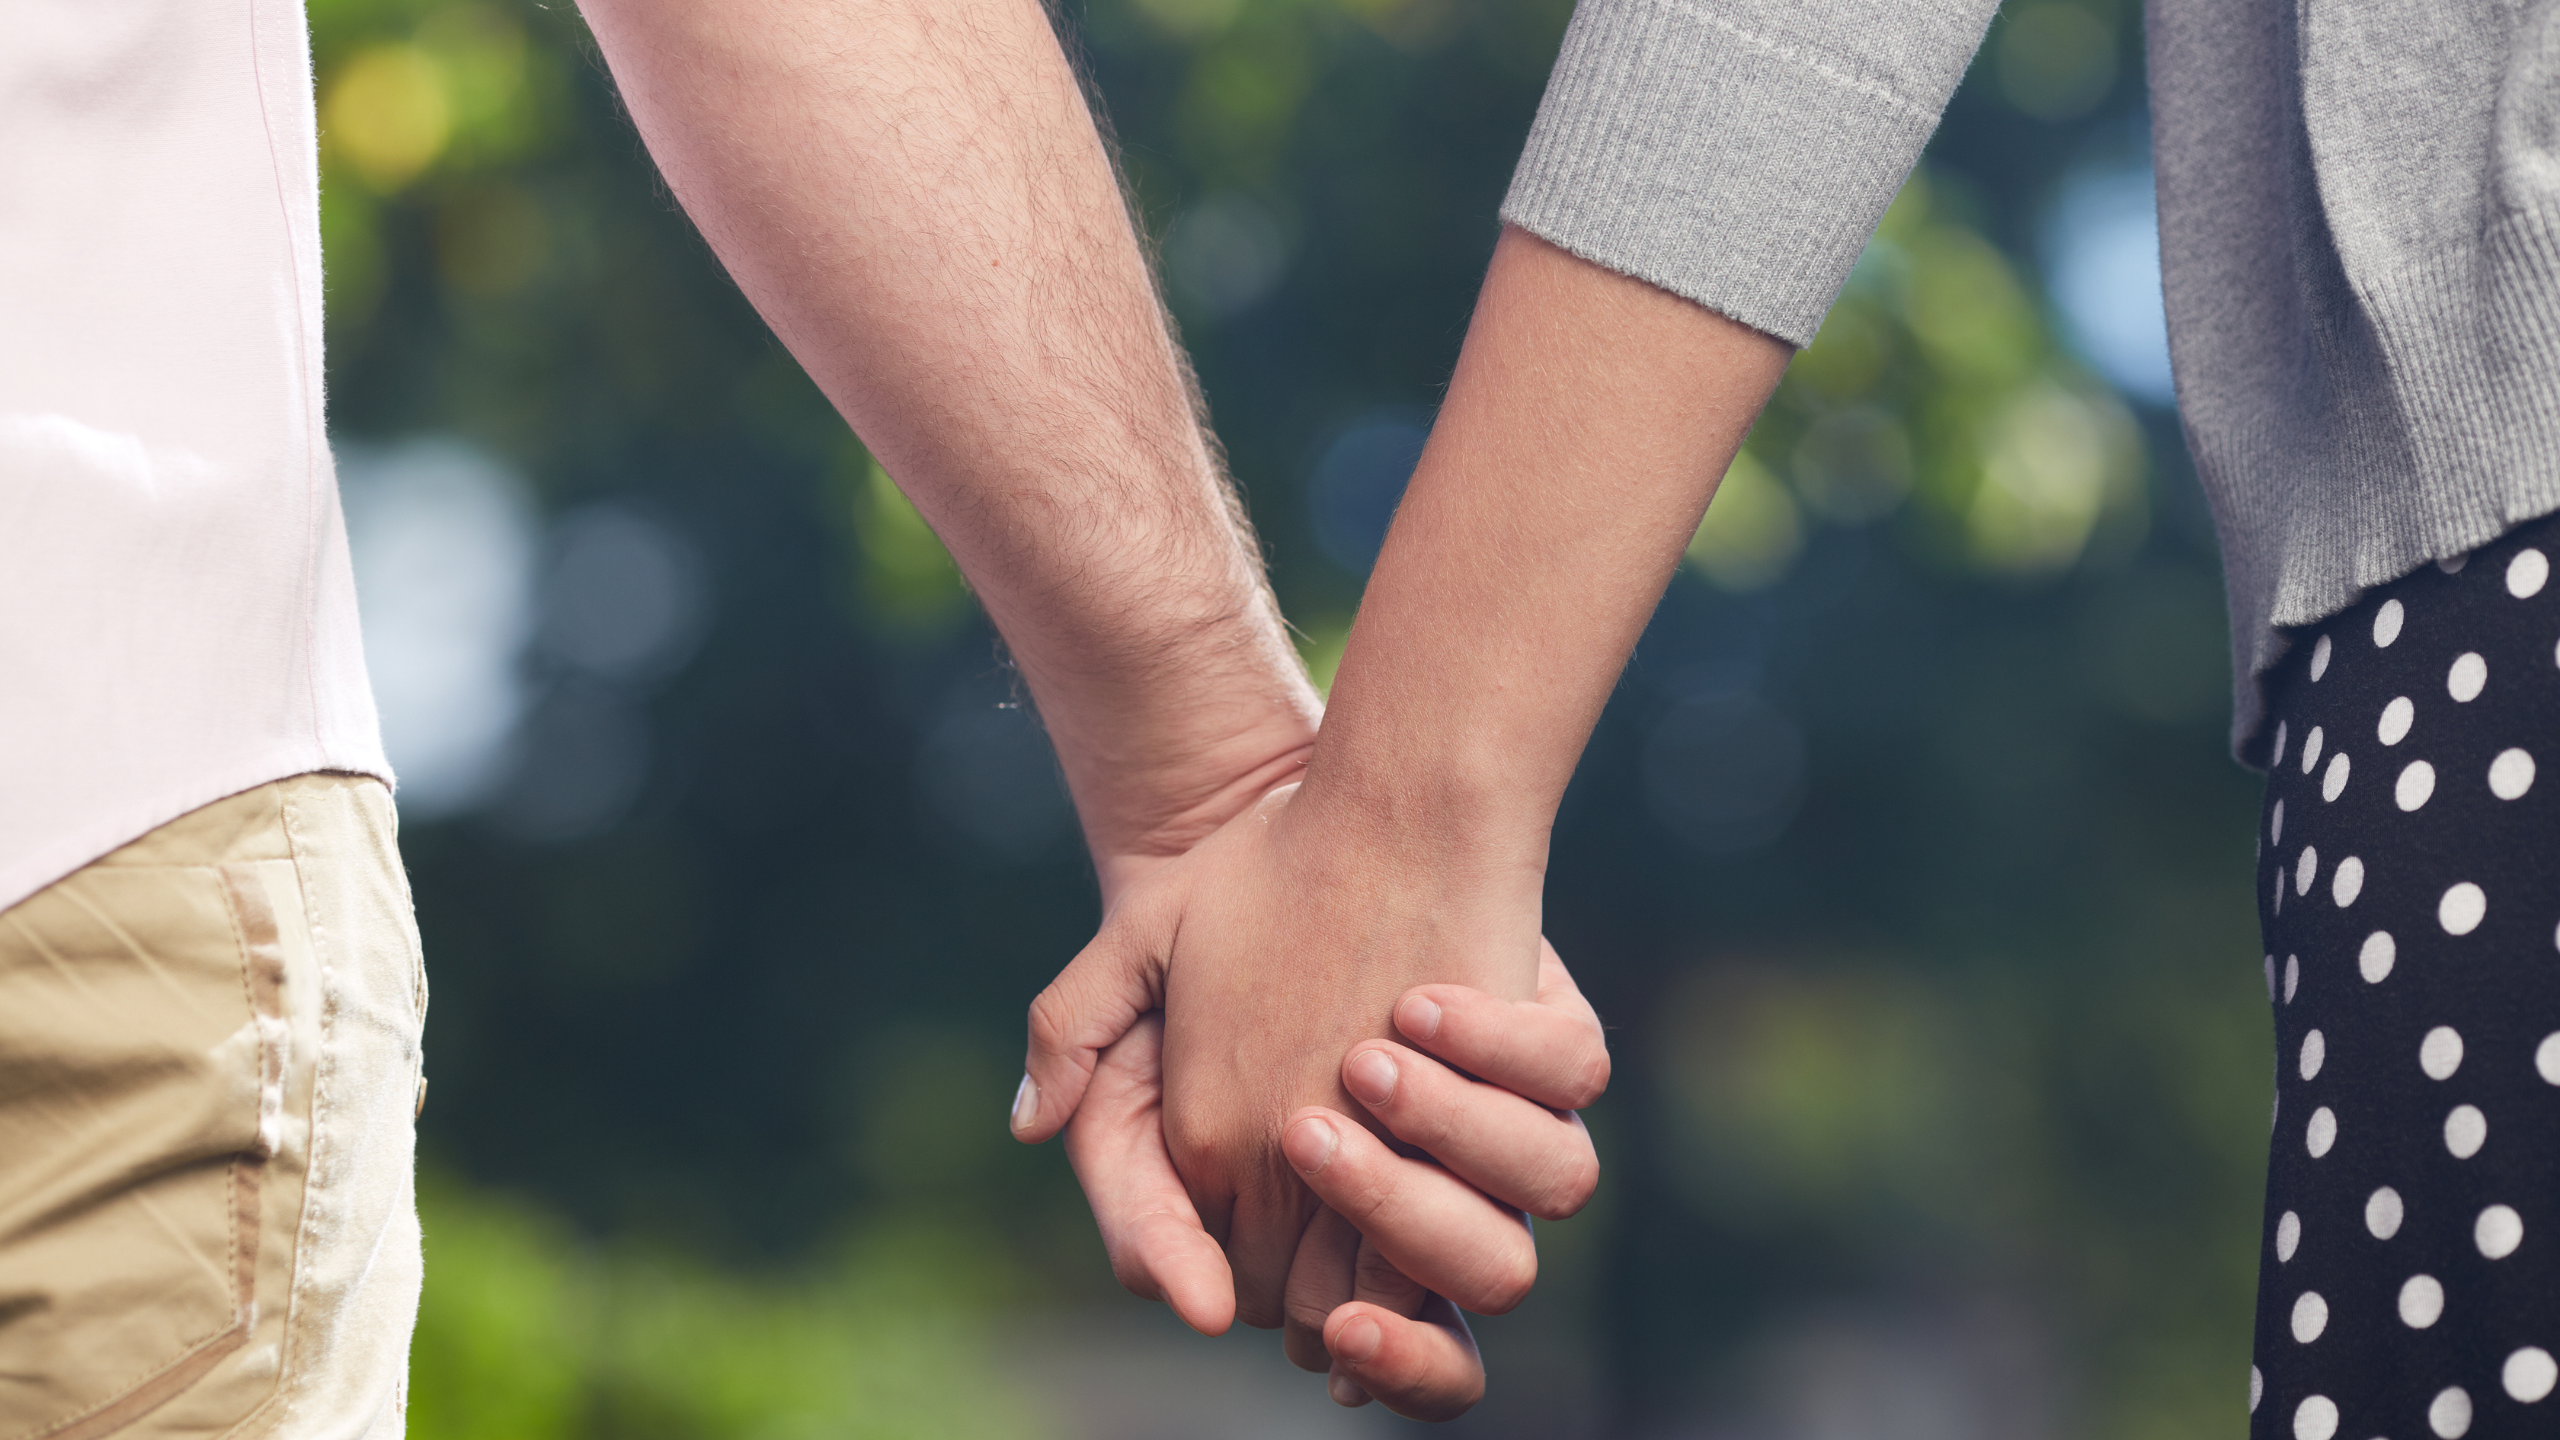 Can An Abusive Relationship Become Healthy